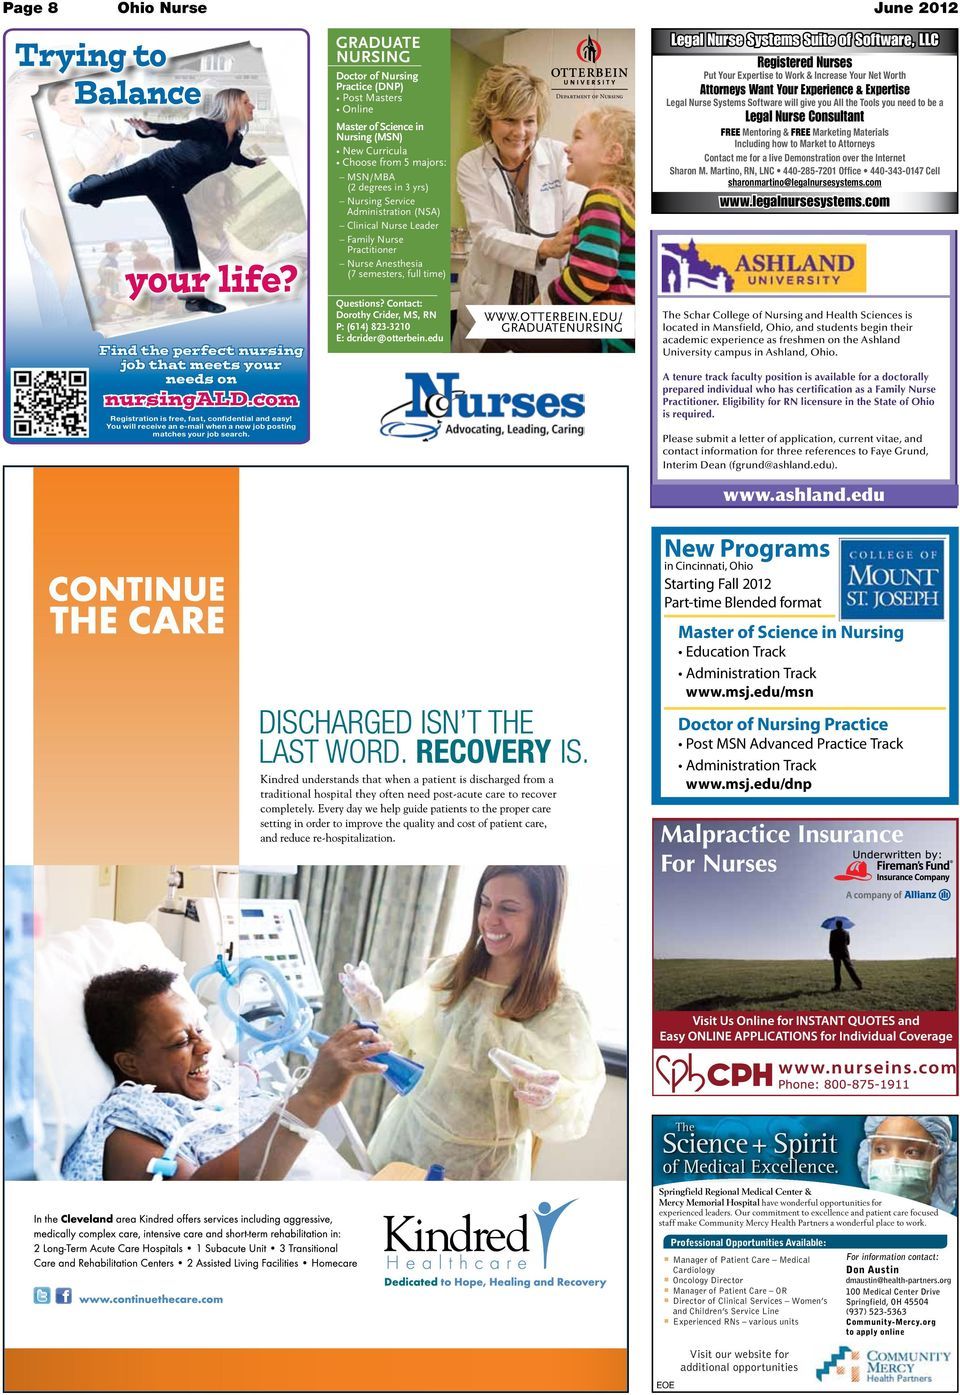 GRADUATE NURSING Doctor of Nursing Practice (DNP) Post Masters Online Master of Science in Nursing (MSN) New Curricula Choose from 5 majors: MSN/MBA (2 degrees in 3 yrs) Nursing Service